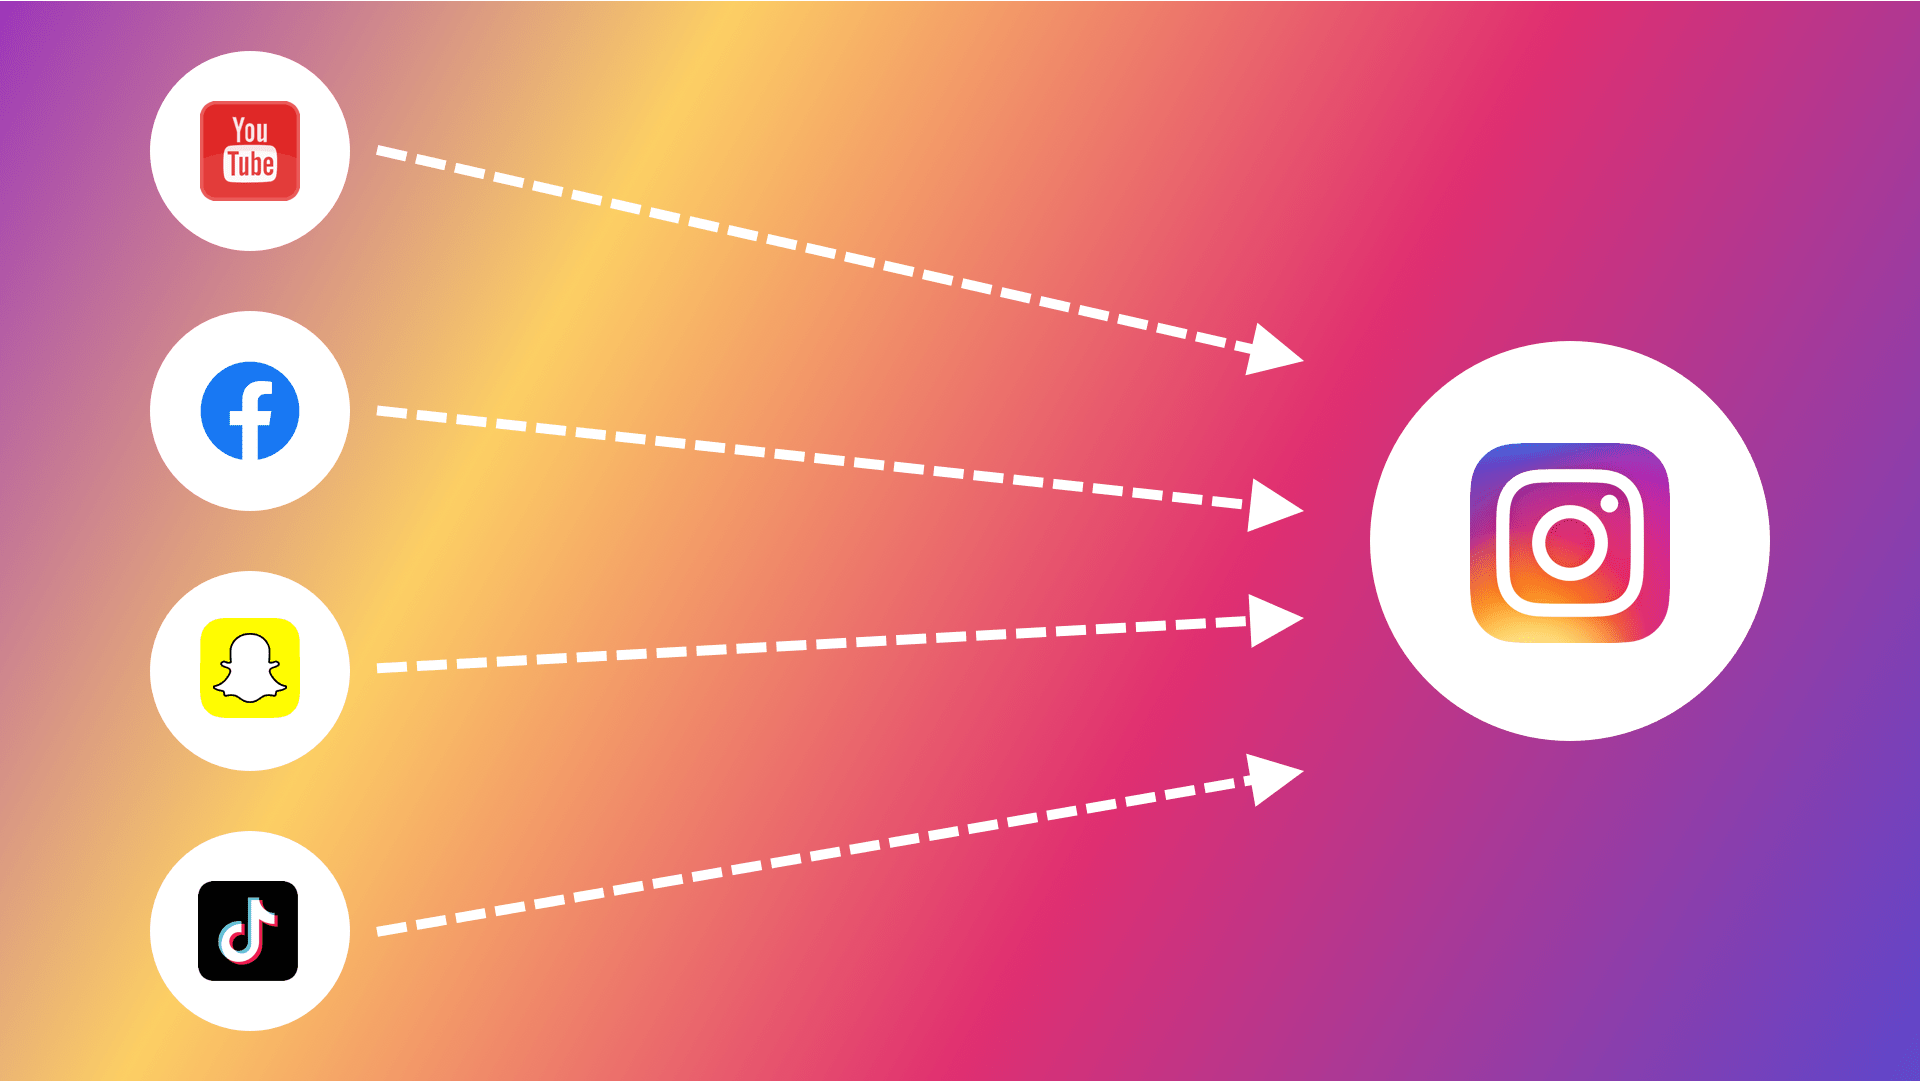 How to deep-link to the Instagram app